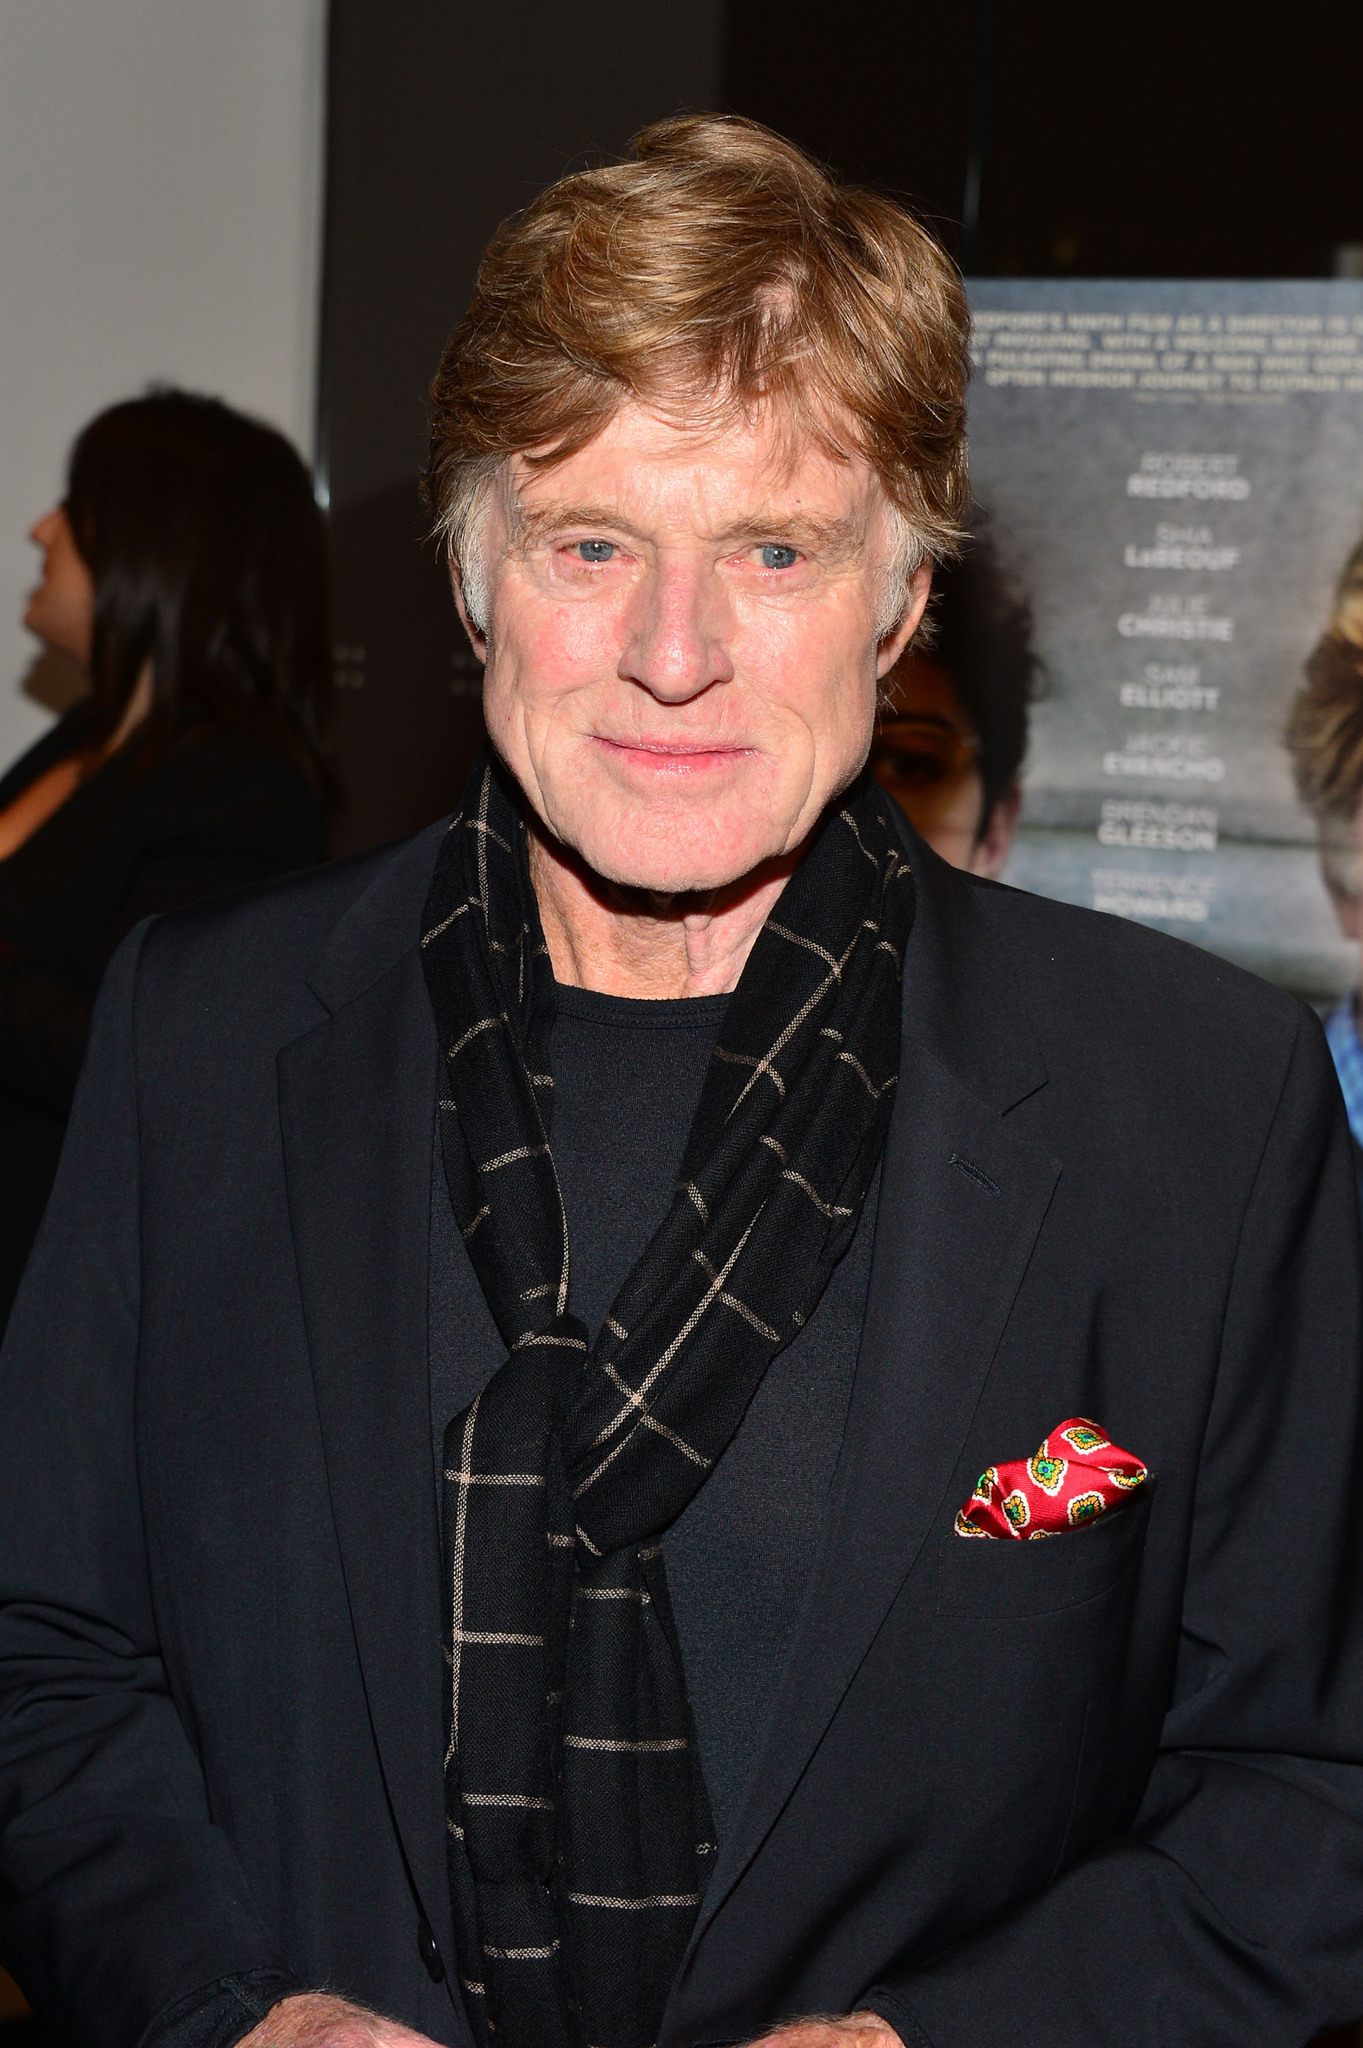 Robert Redford at event of The Company You Keep (2012)